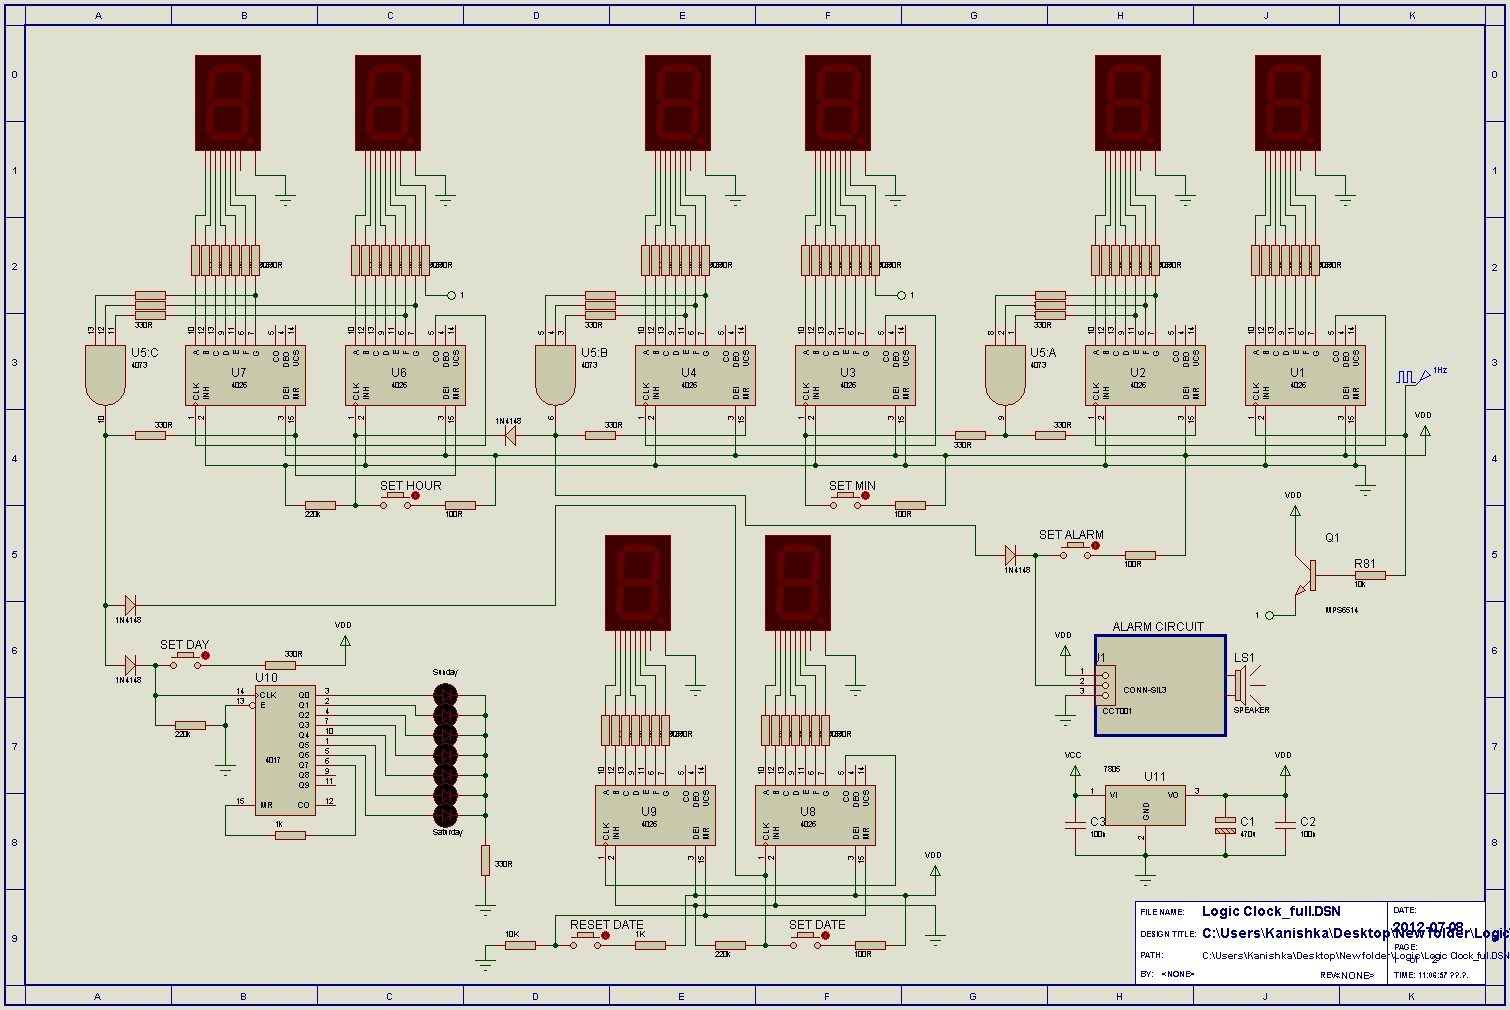 Digital Clock Circuit Diagram Using Counters Best Electrical 7 Segment Counter 24hr And Alarm Logic Ics Cd4017 Cd4026 Rh Scopionz Blogspot Com Projects